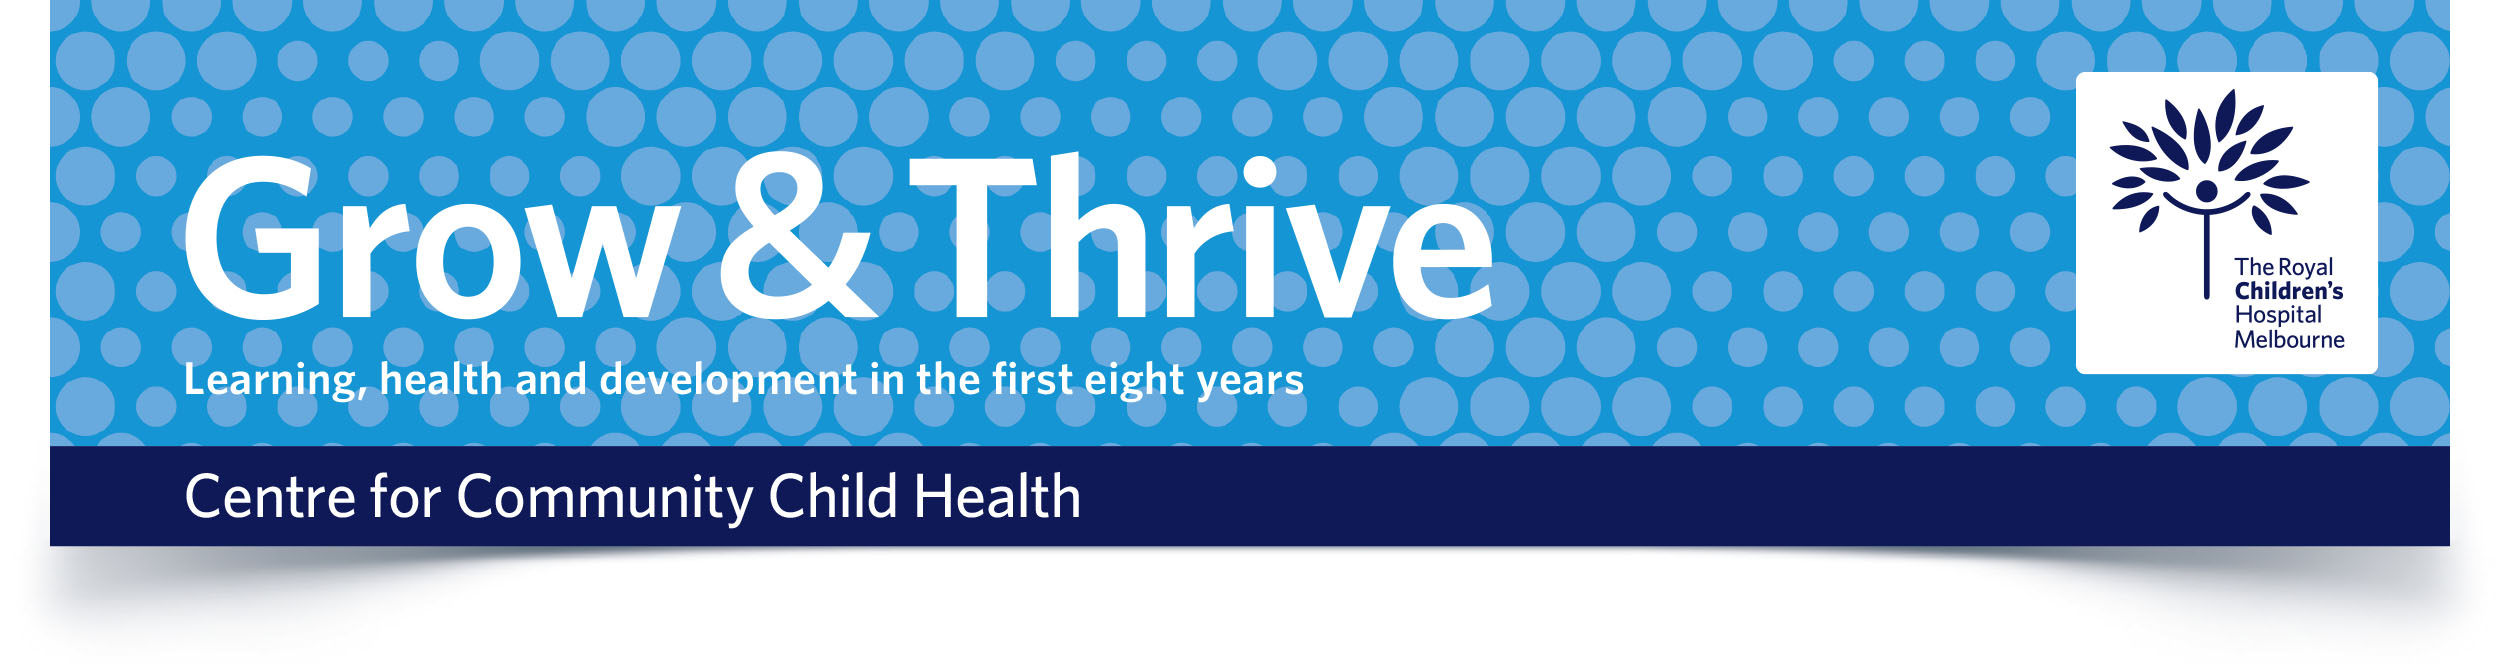 Grow & Thrive banner_new